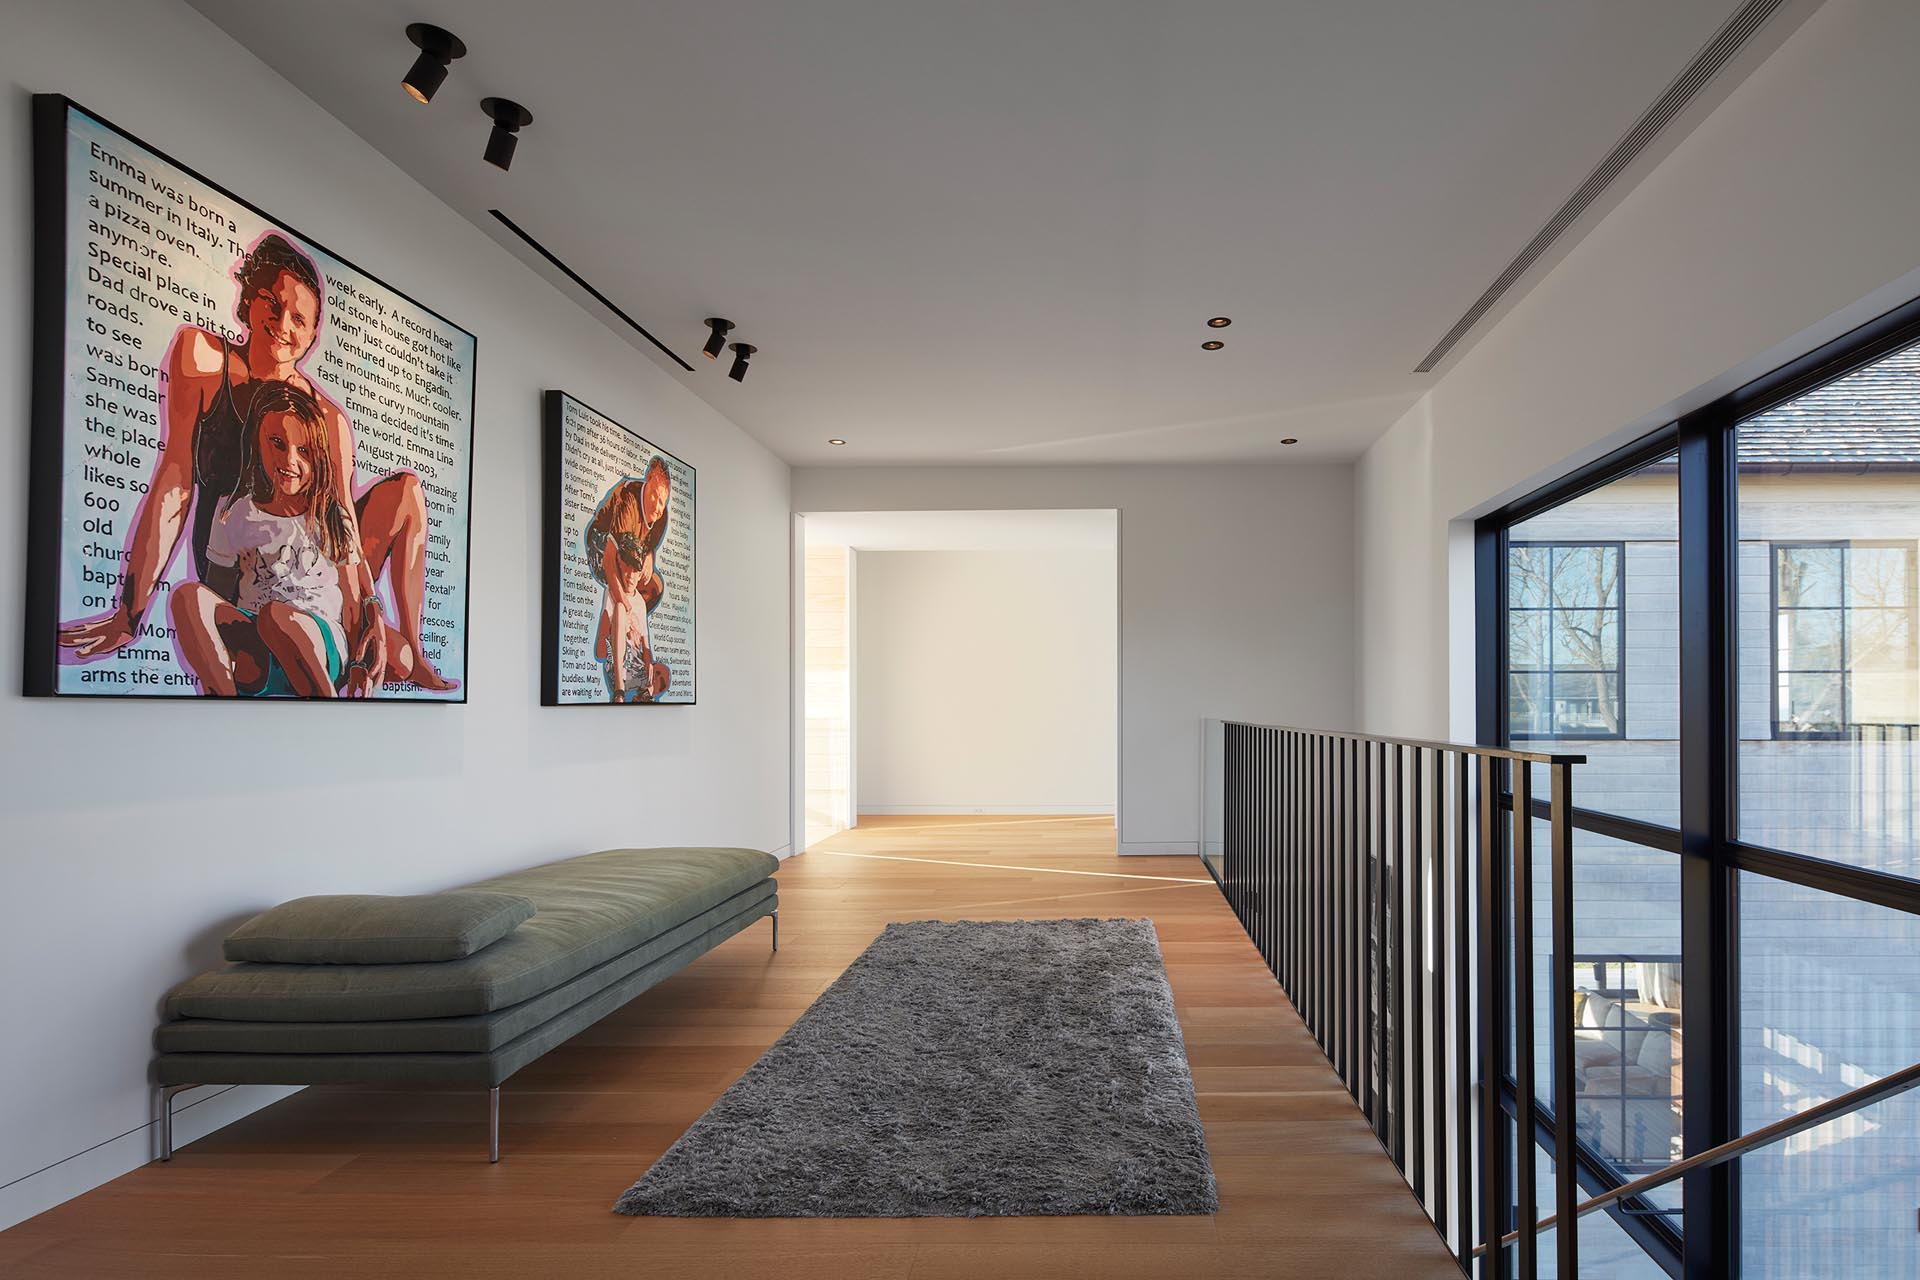 At the top of the stairs in this modern house, there's an open hallway with a seating area that connects to the bedrooms and bathrooms.